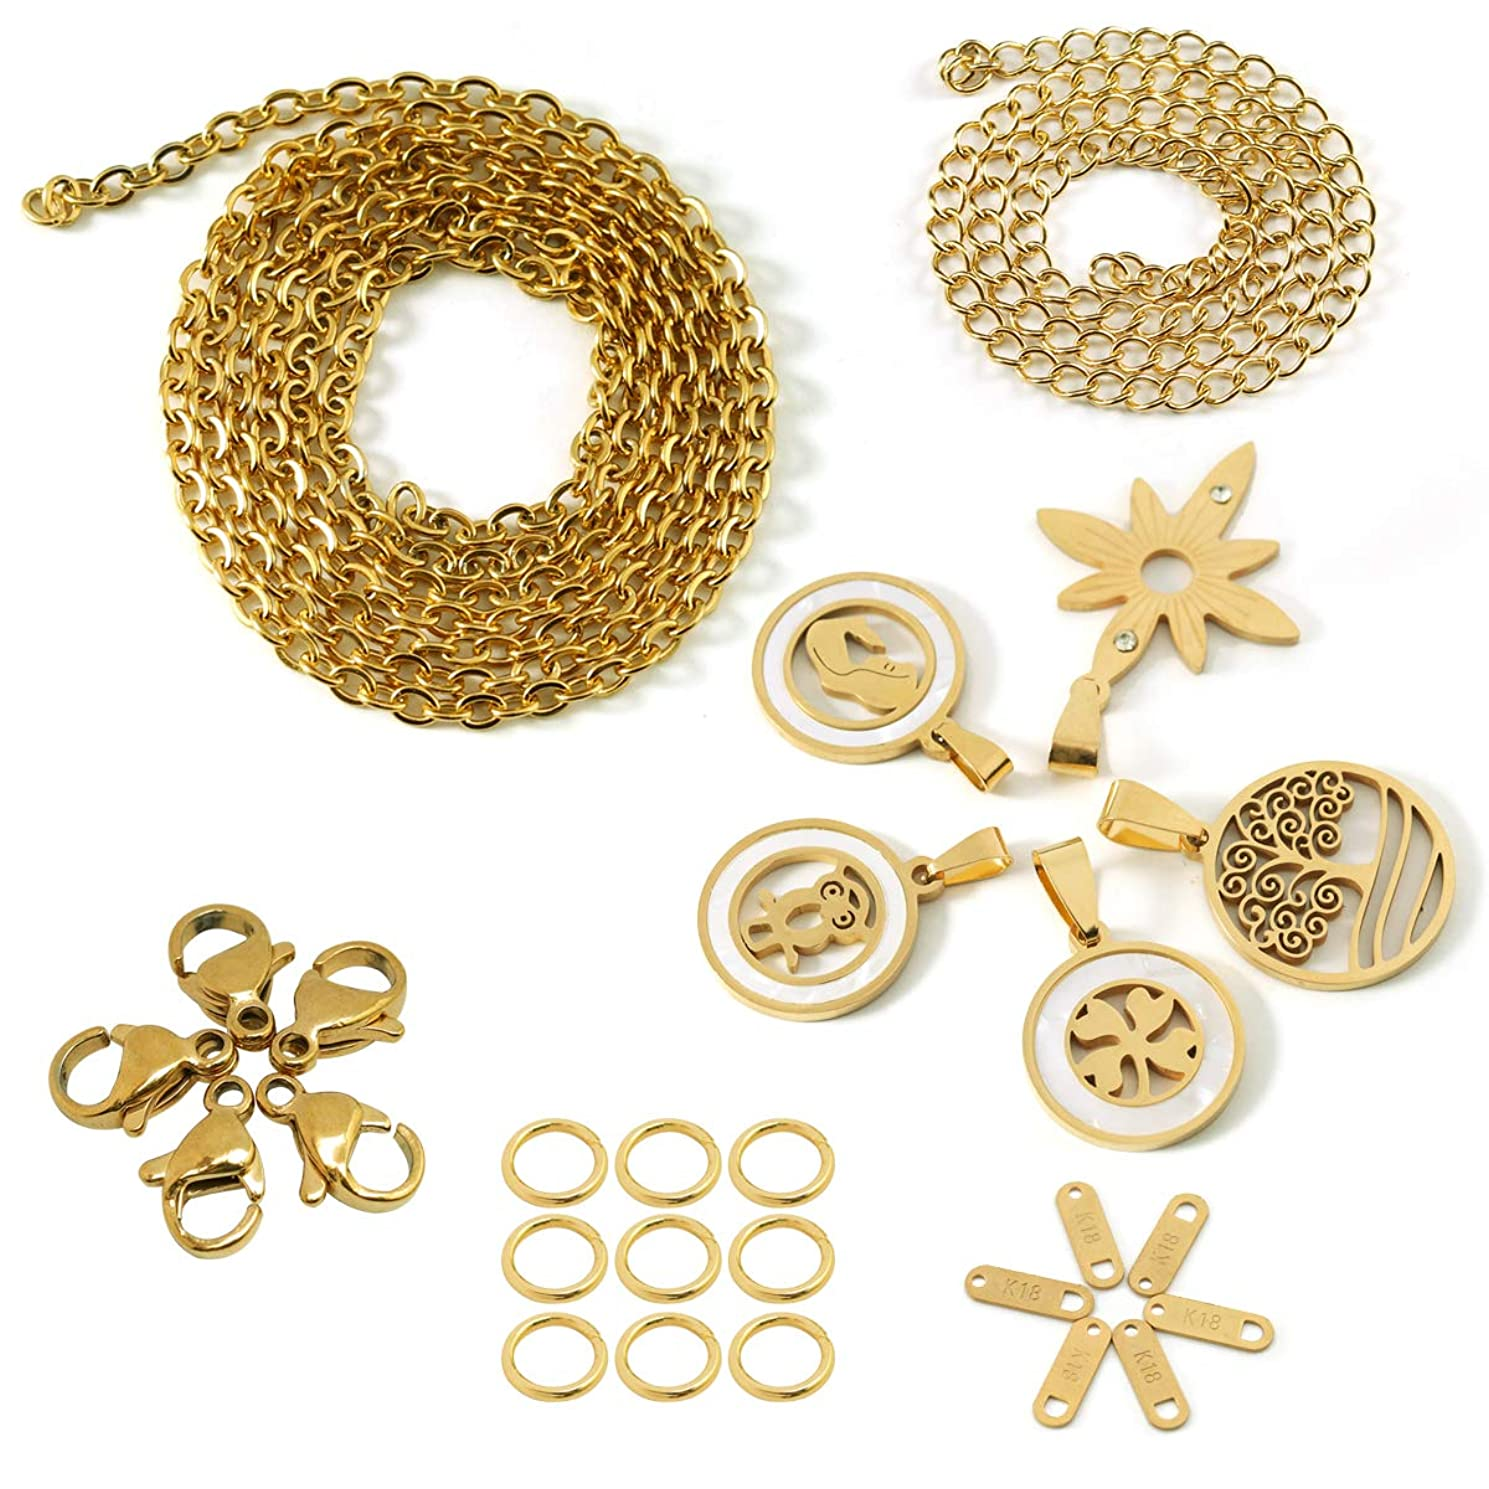 Forise 8 feet Gold Stainless Steel Necklace Jewelry Chain with 5 Charms Pendants,15 Jump Rings and 6 Lobster Clasps and 12 Inch Tail Chain for DIY Necklace Making Jewelry Repair Kits